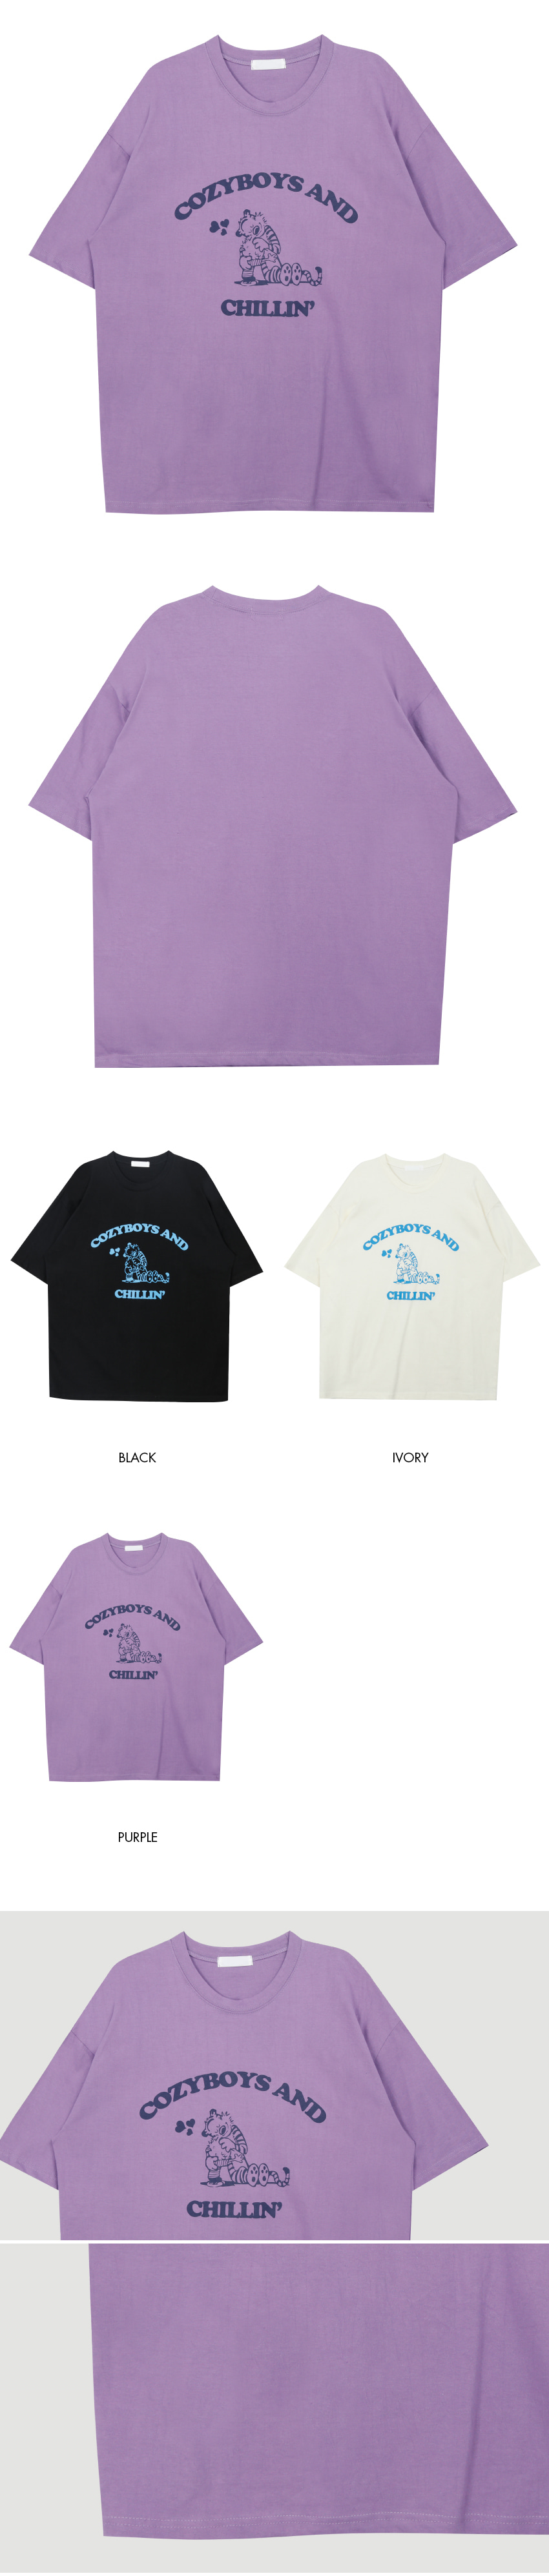 Koji Boy Packy T-shirt